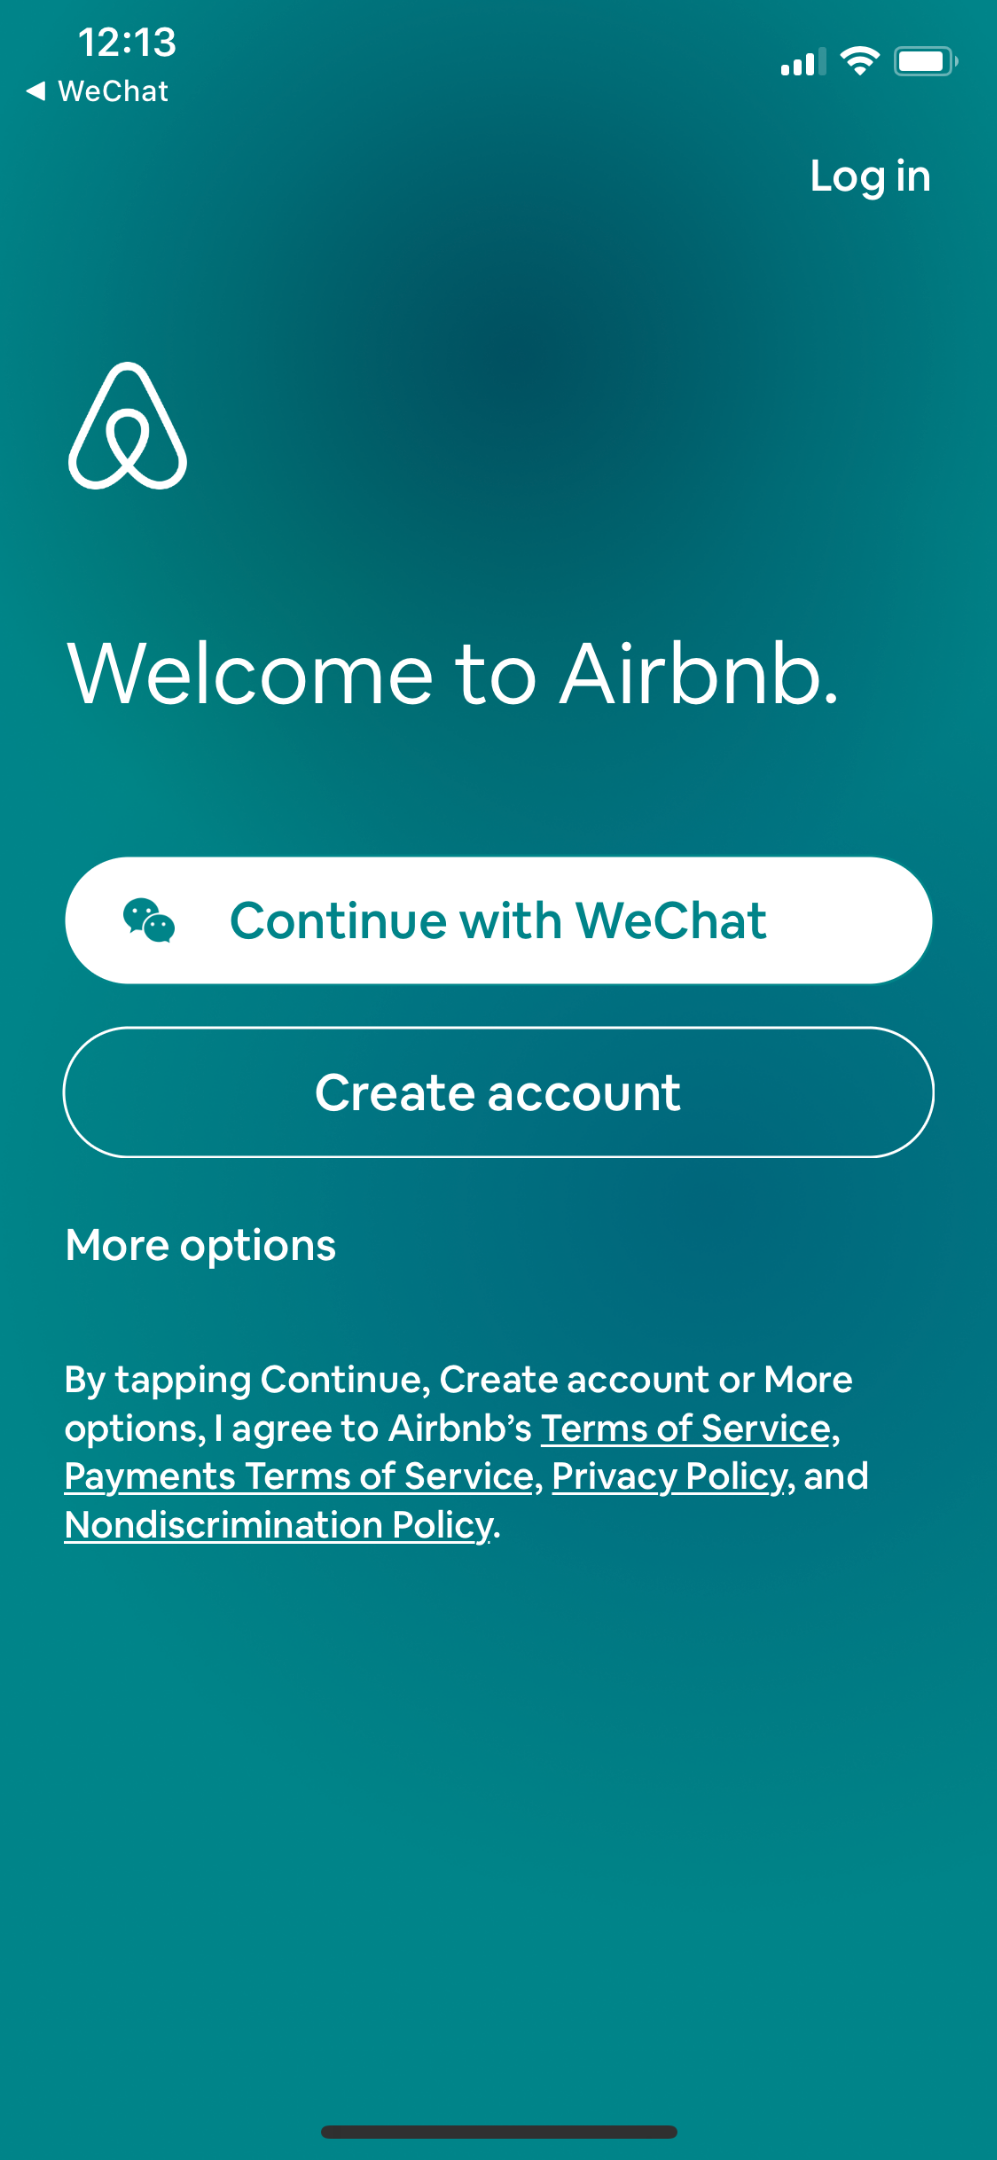 Different landing pages for WeChat authorization